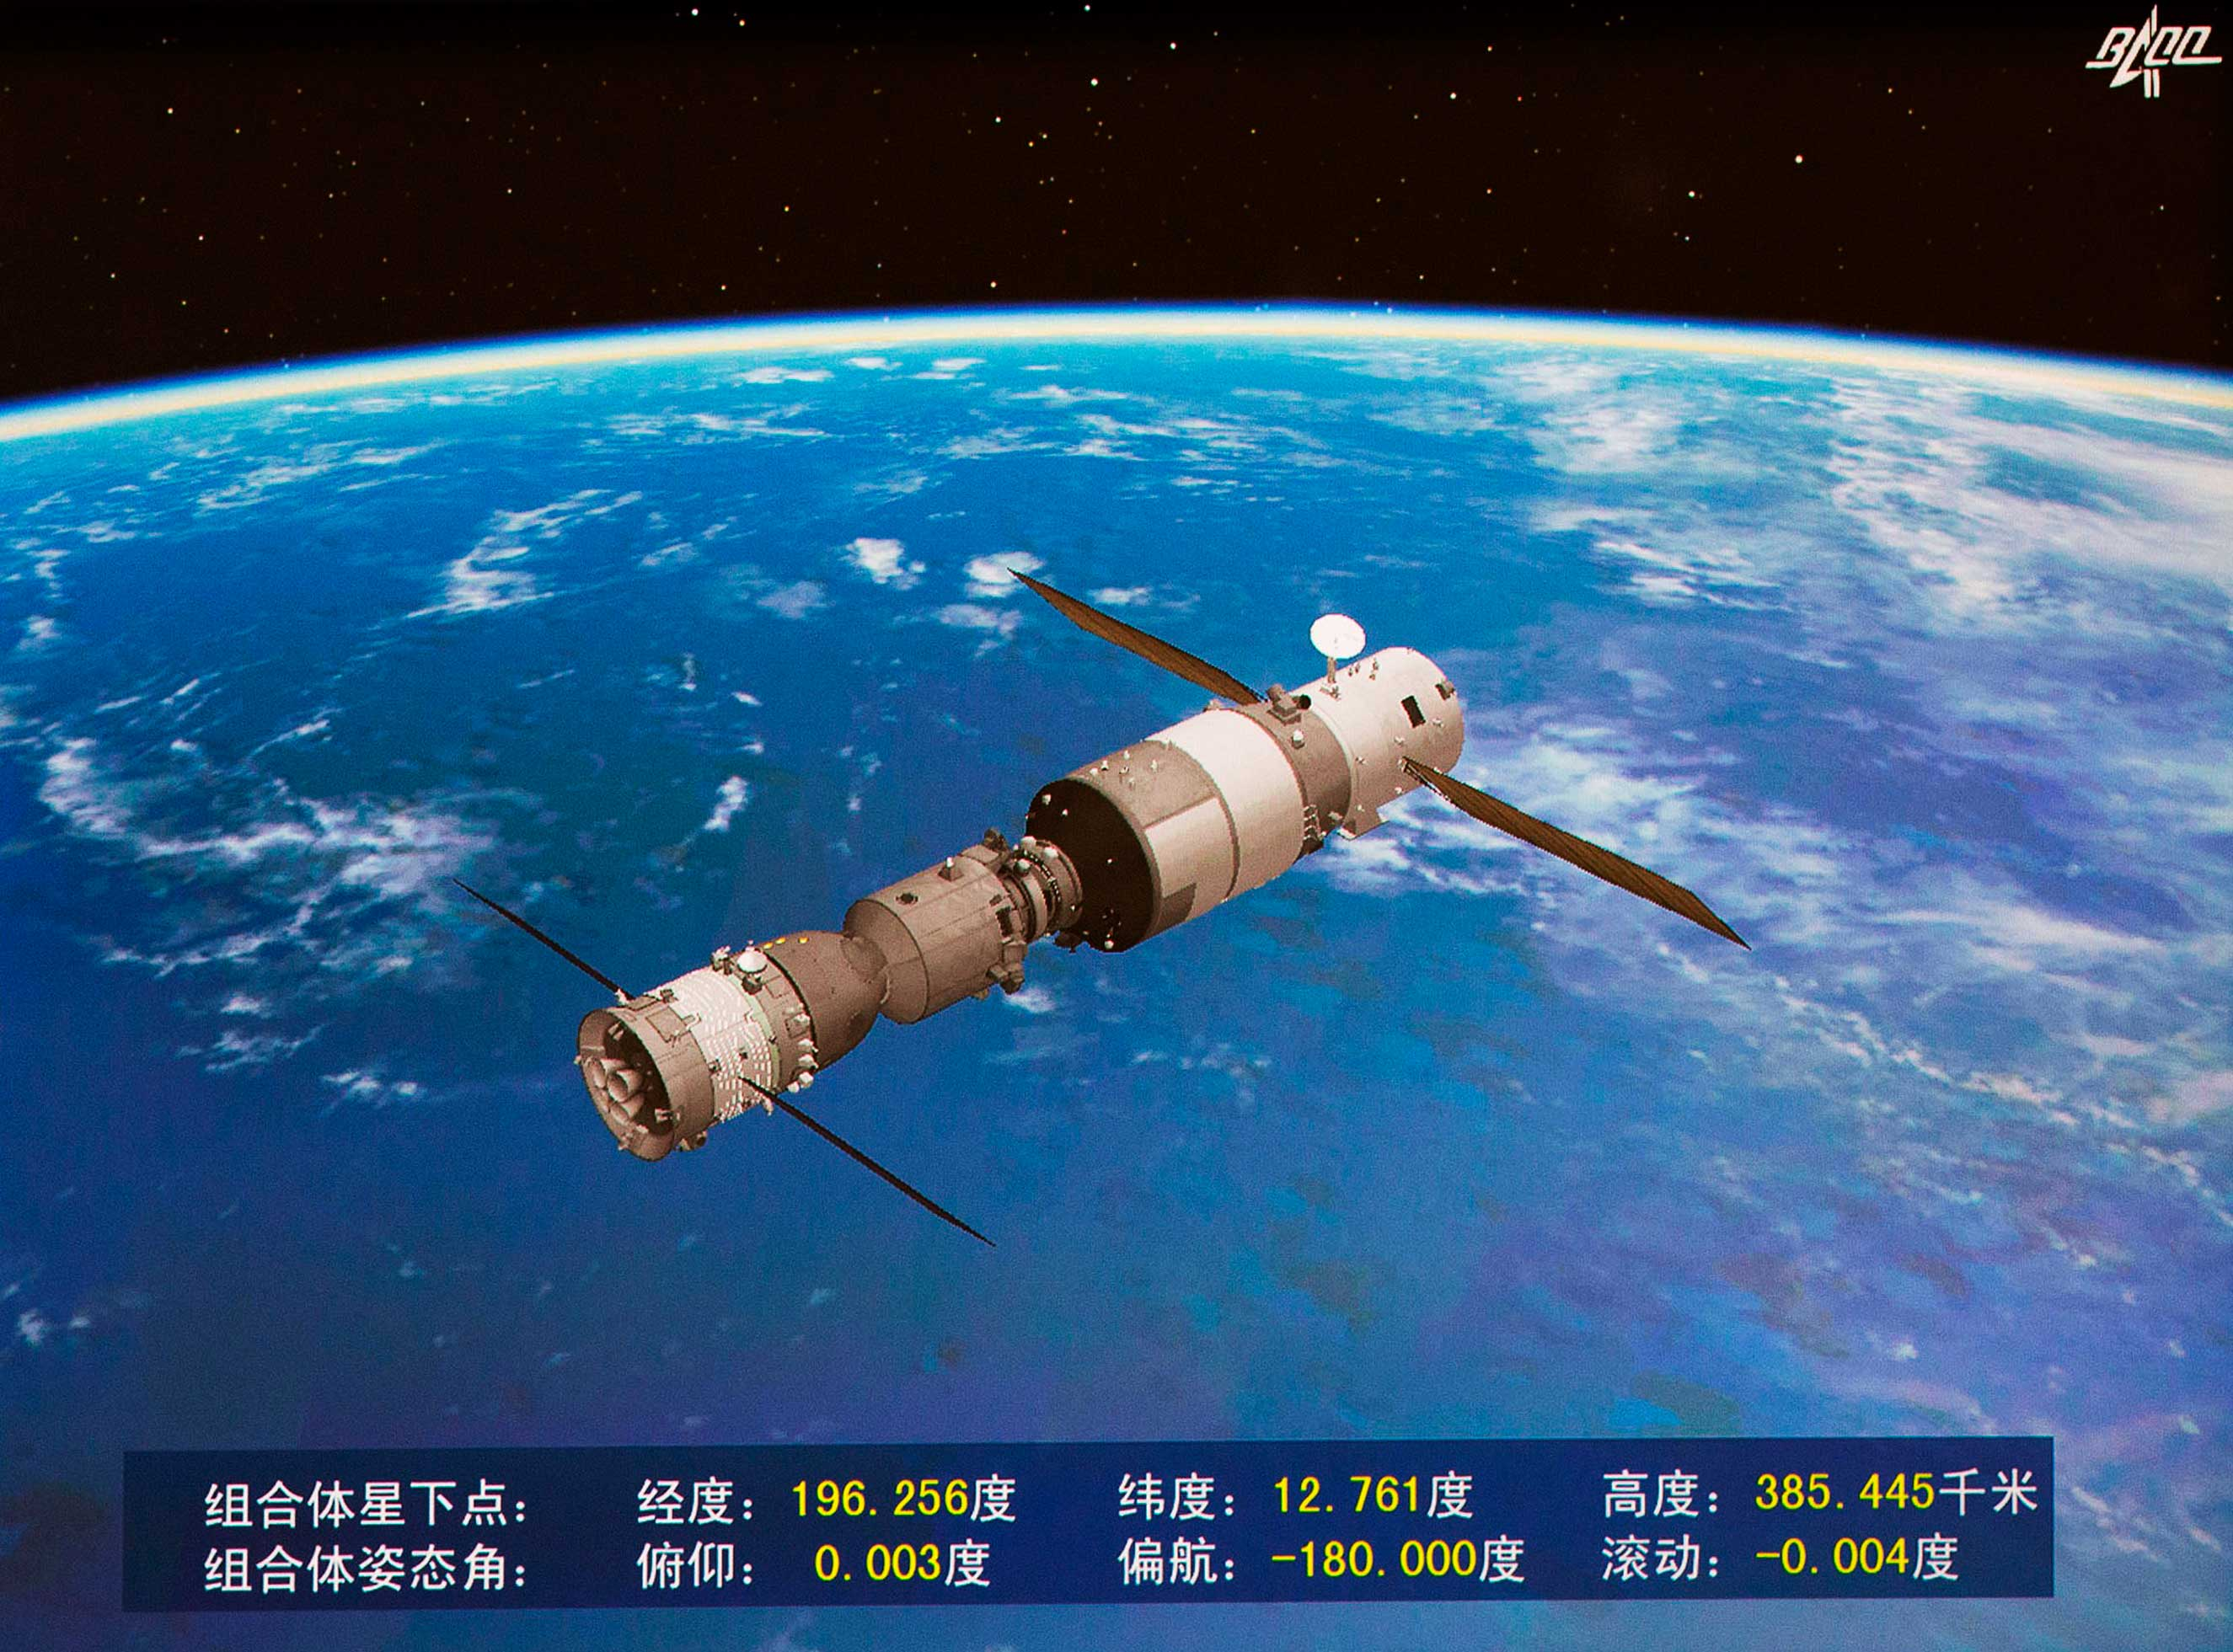 tiangong-2-space-station-china